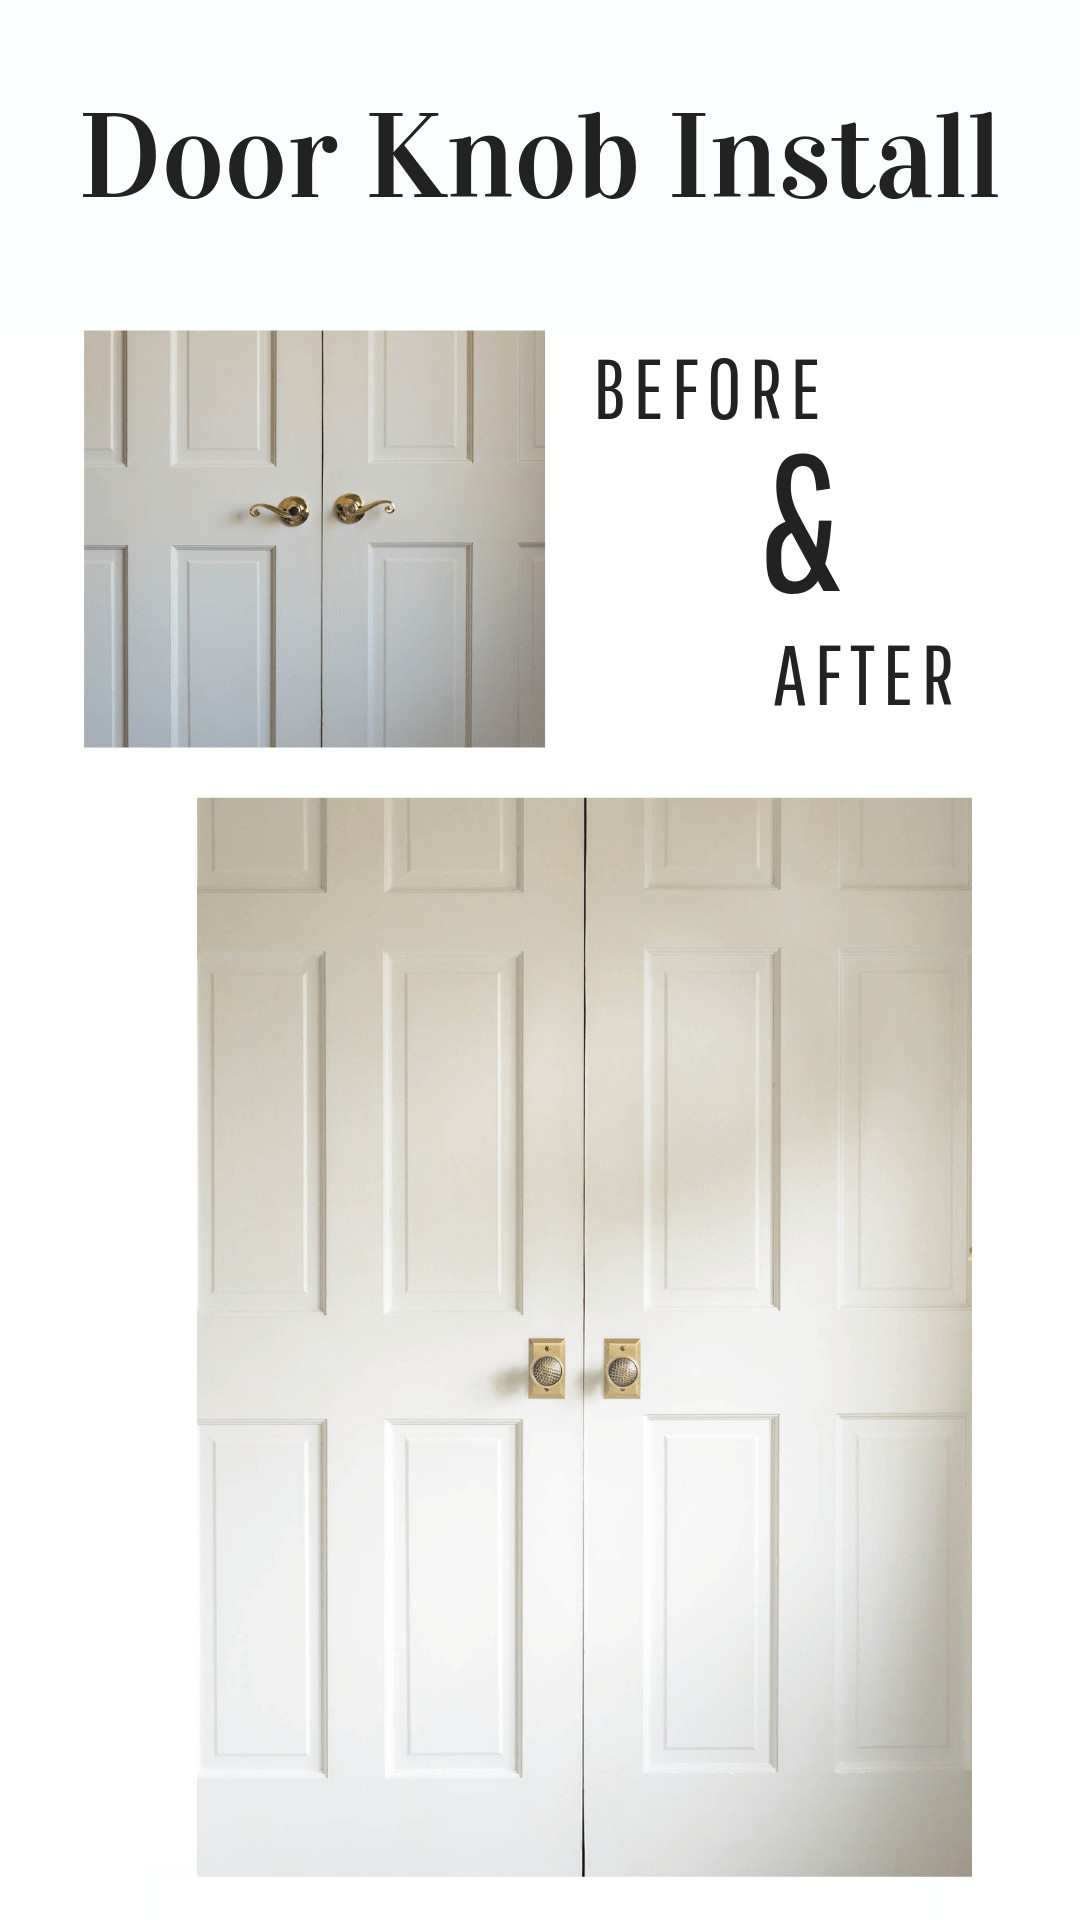 Before and after door knob installation